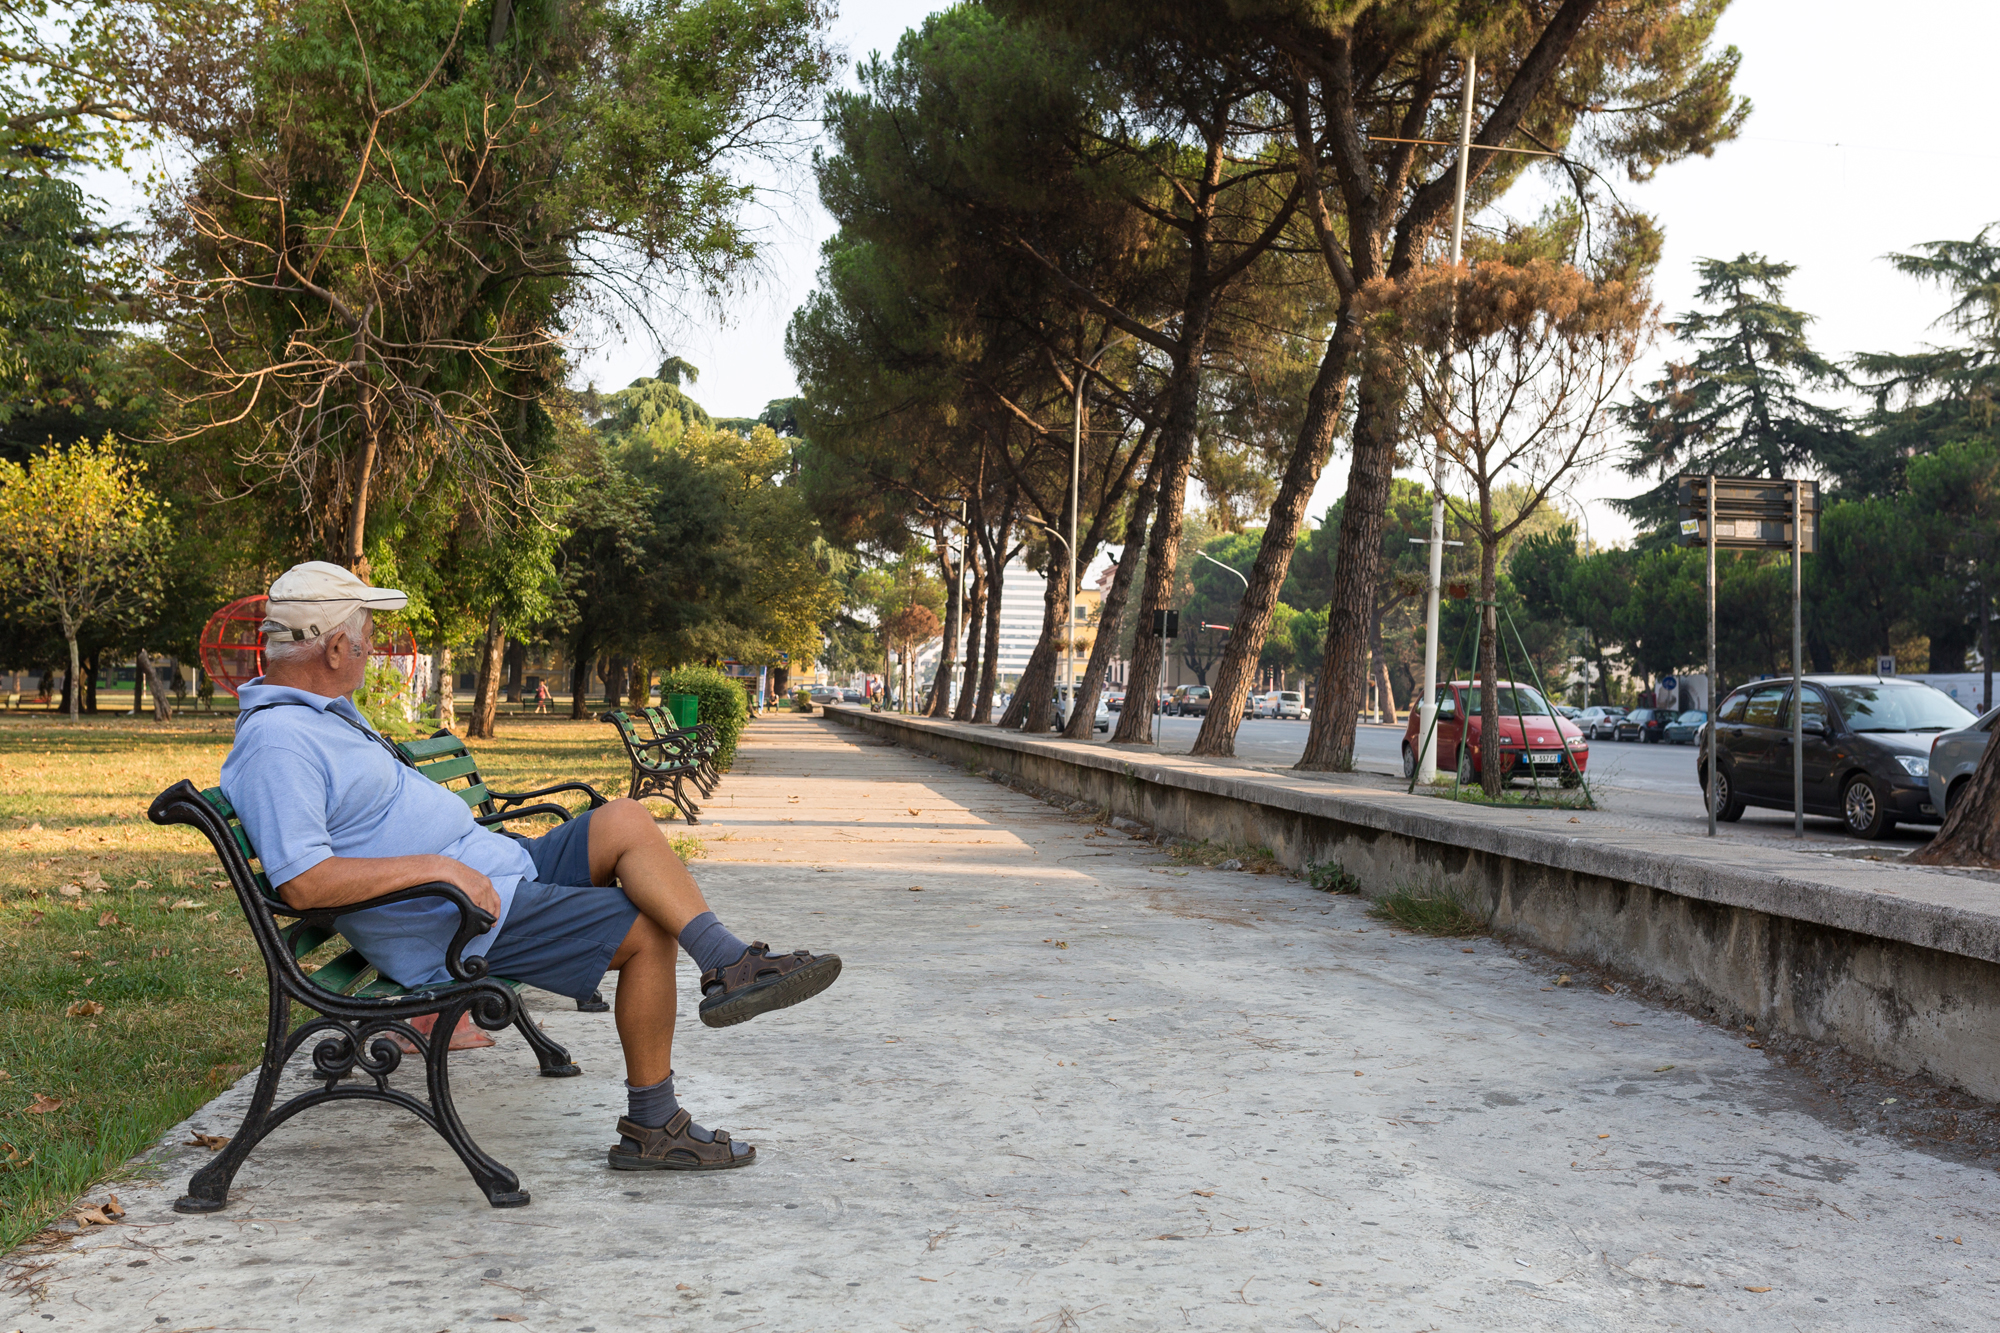 A man sitting on a bench in Tirana, Albania.